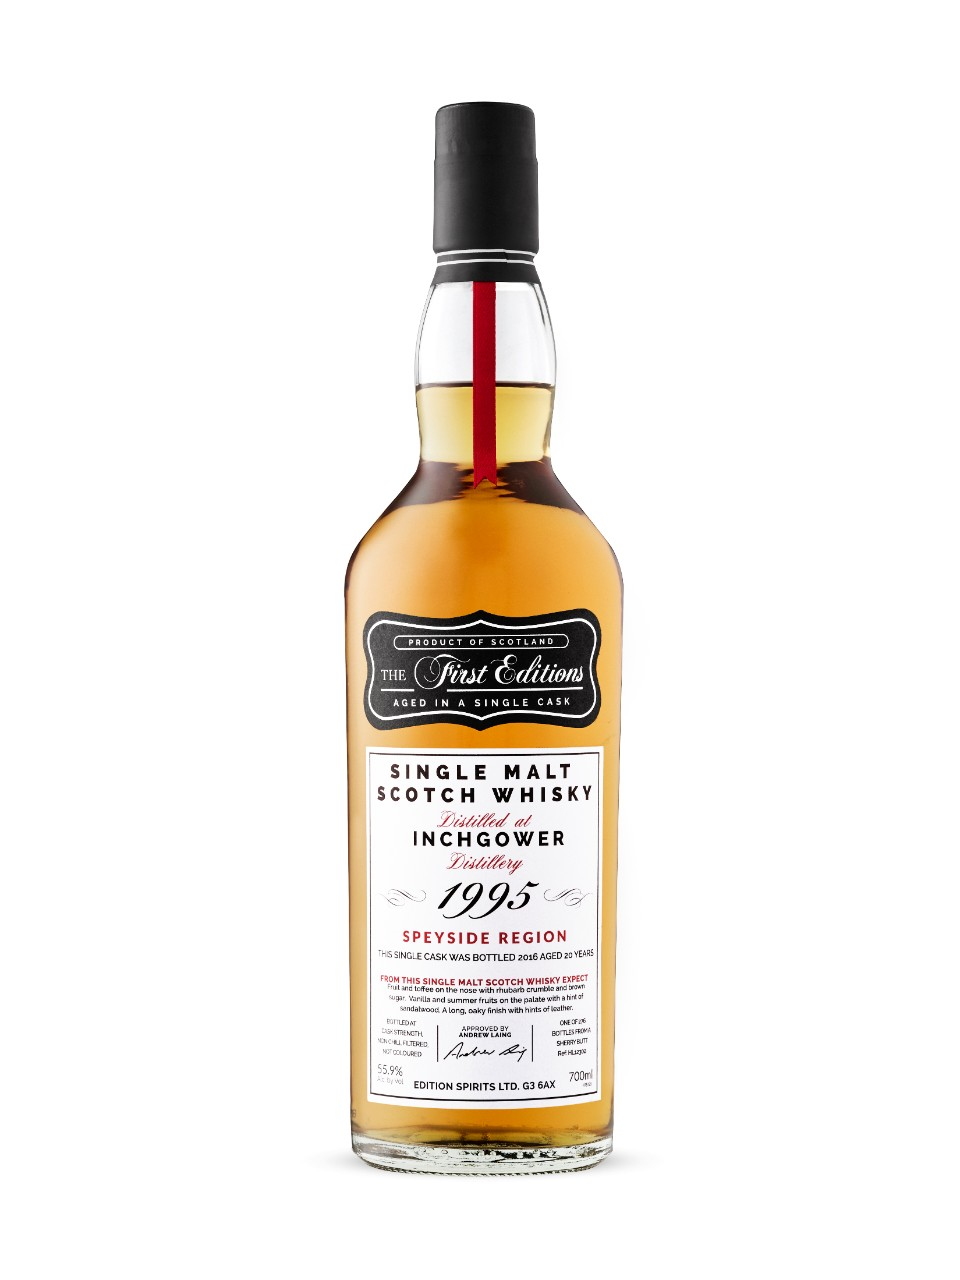 First Edition Inchgower Sherry 20 Year Old Scotch